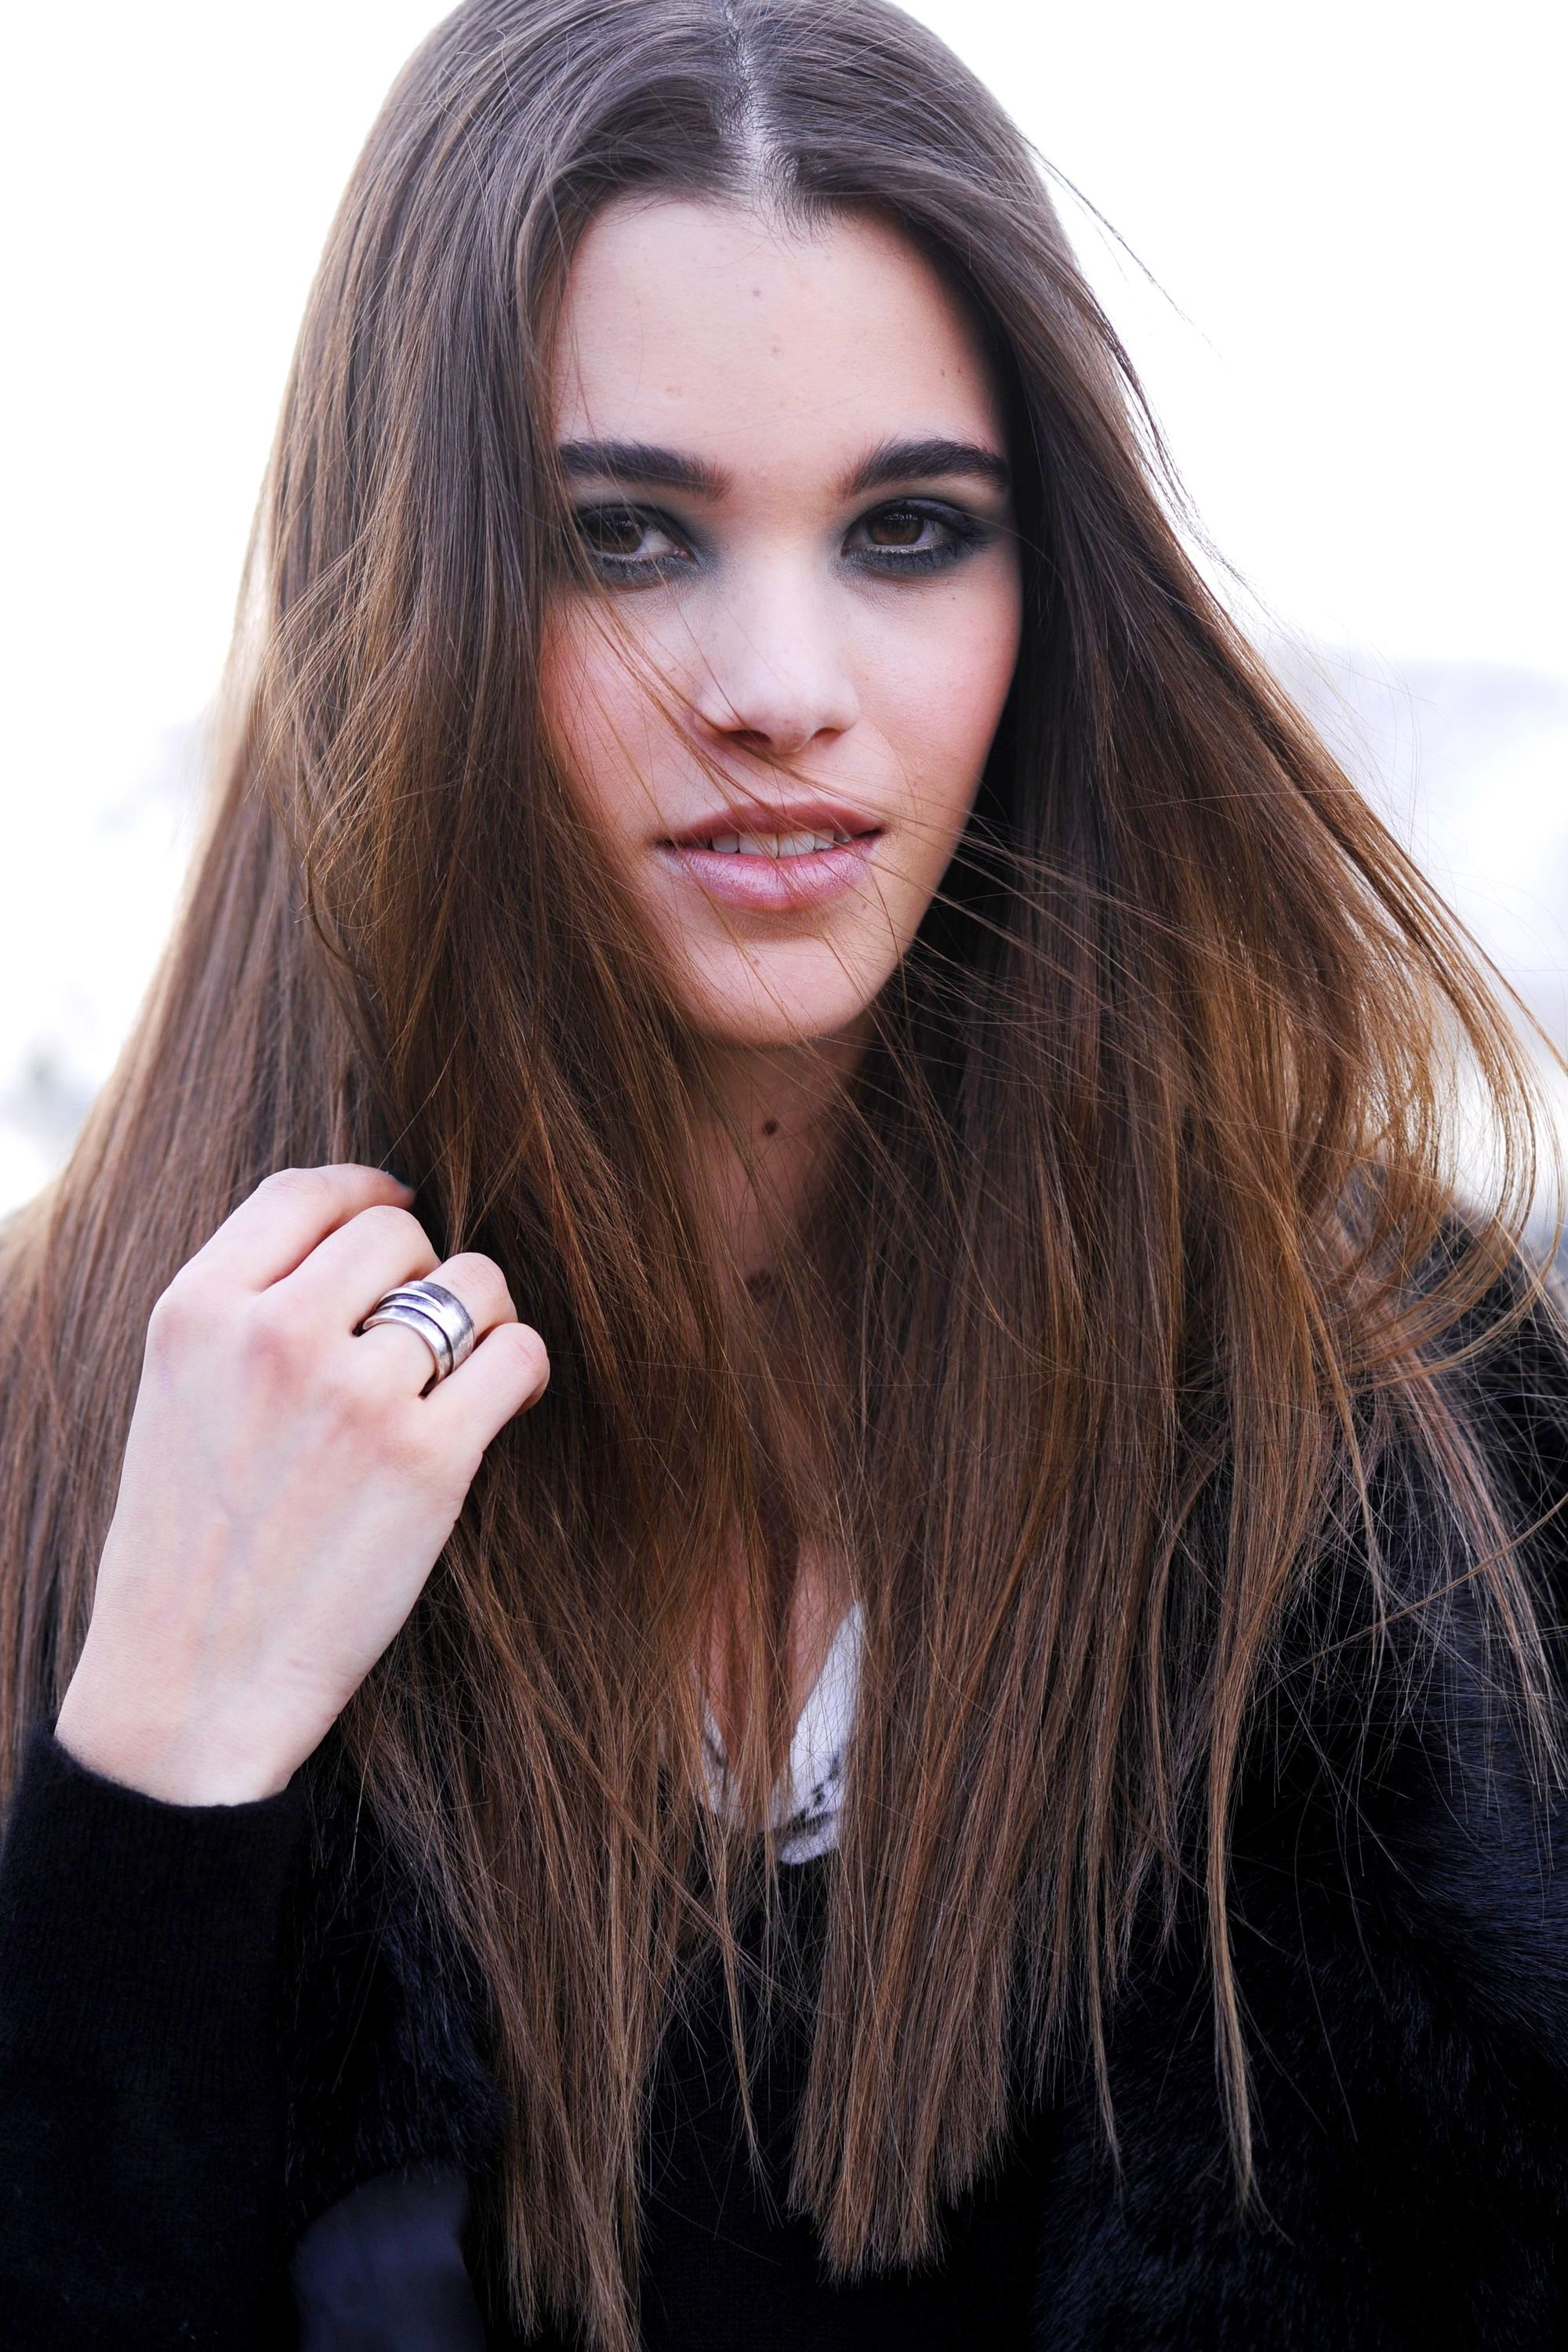 Hot oil treatment hair guide: Woman with long, healthy dark brown hair wearing a black jacket outside